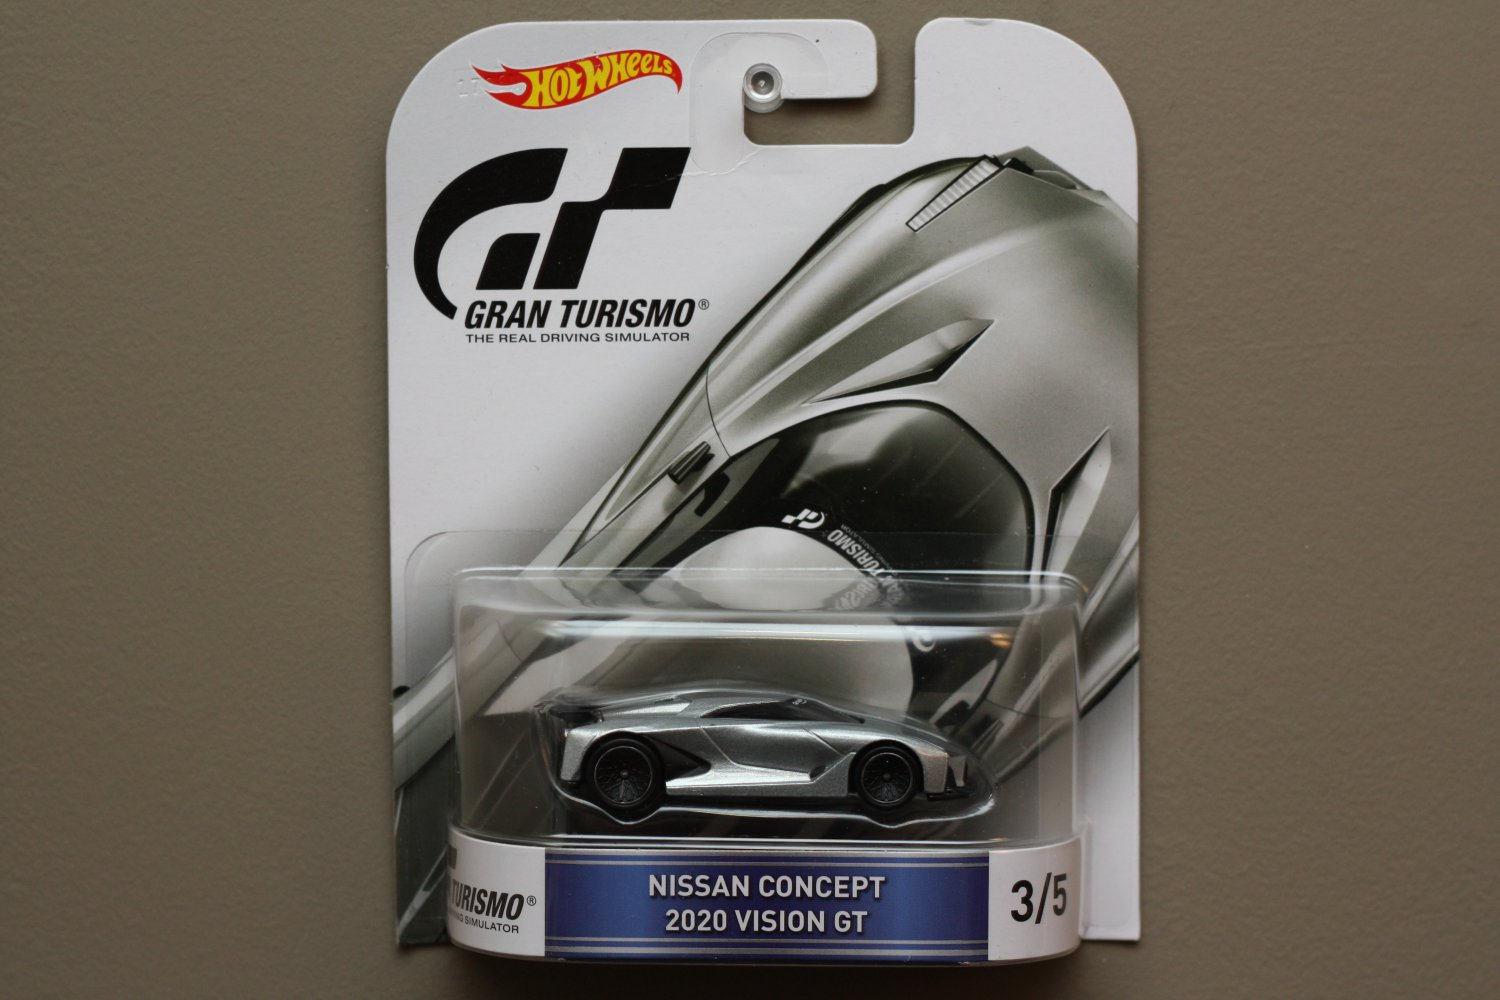 Hot Wheels 2016 Retro Entertainment Gran Turismo Nissan 2020 Vision GT Concept (SEE CONDITION)